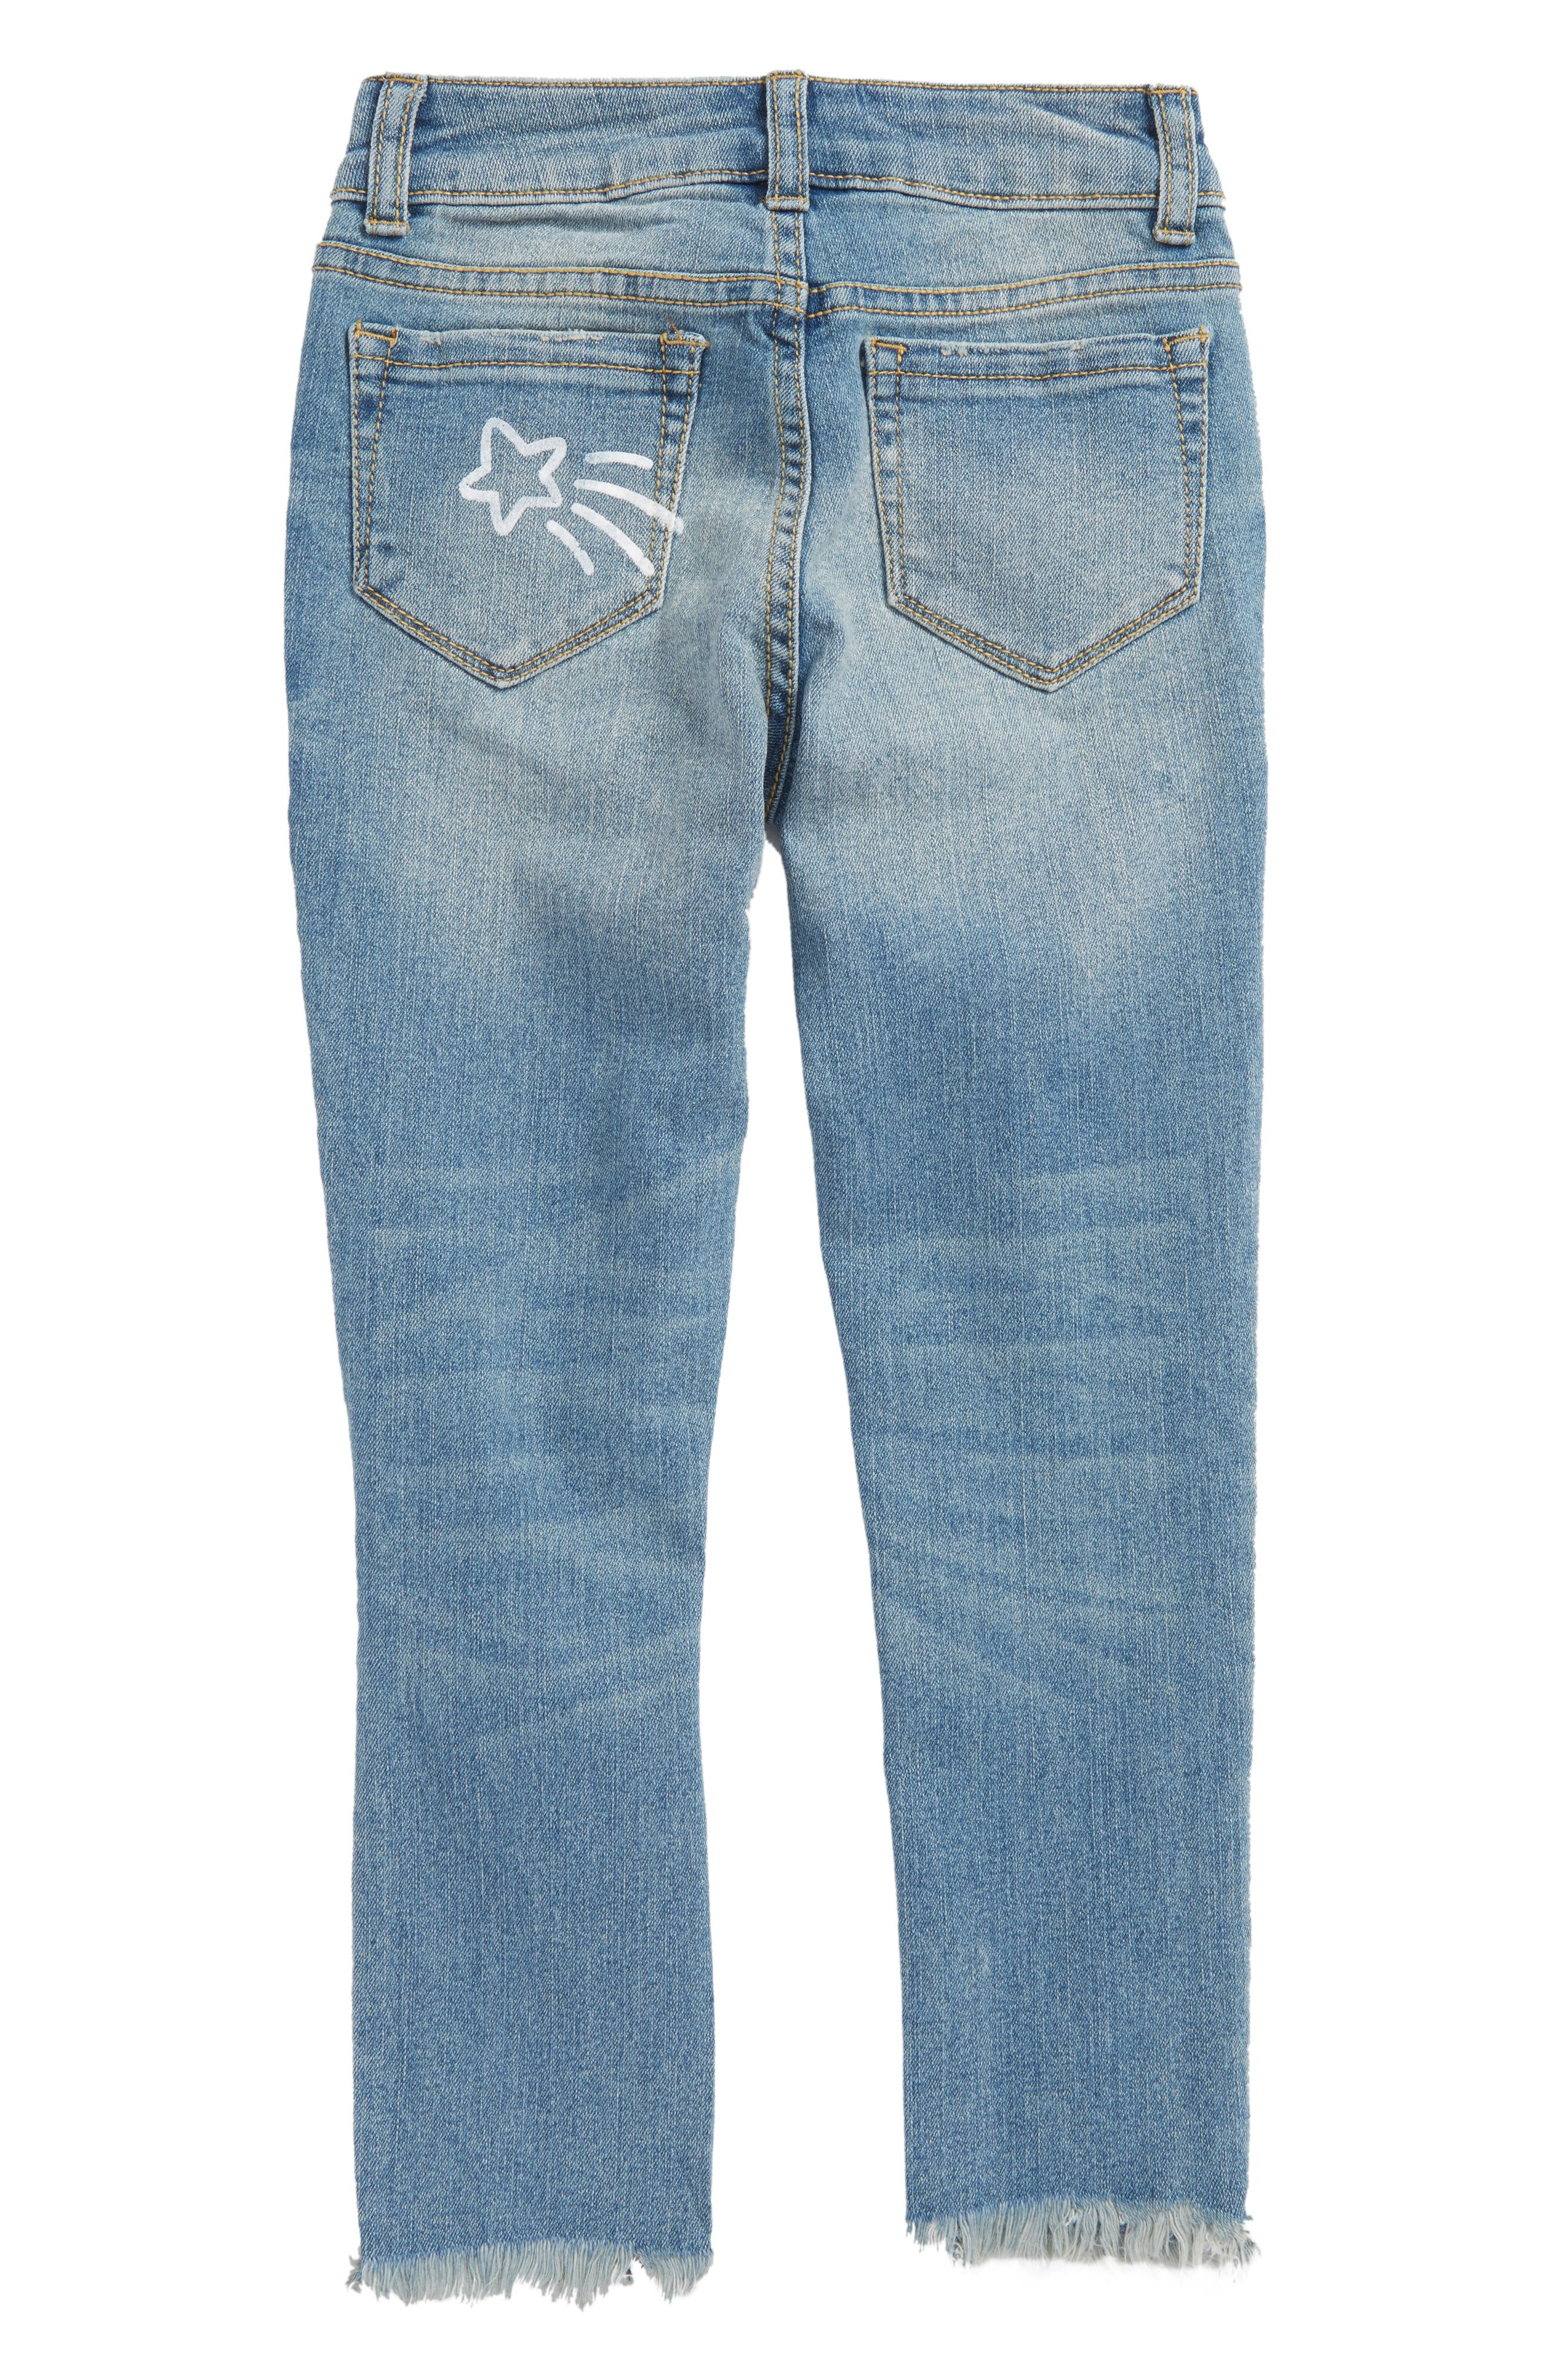 Conversational Distressed Skinny Jeans,                             Alternate thumbnail 2, color,                             Blur Wash